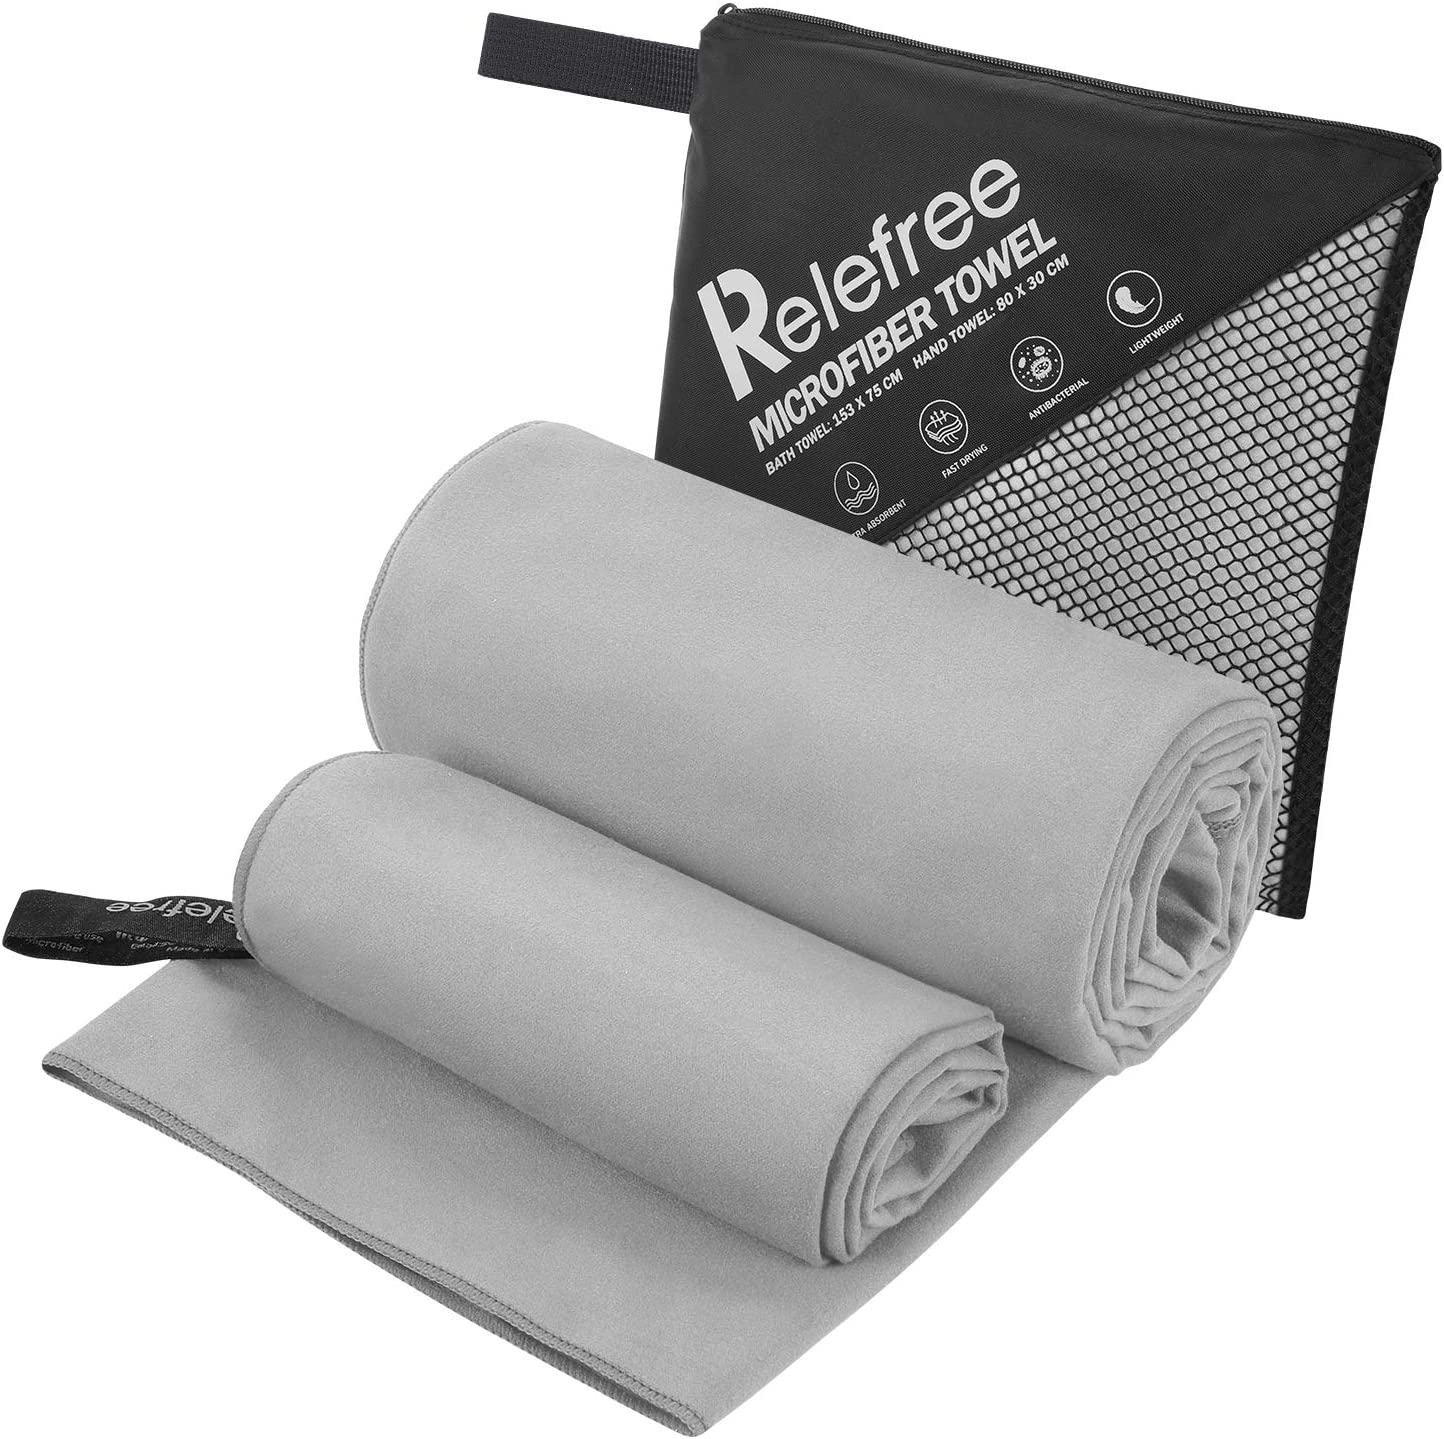 Relefree Microfiber Towels(2 Pack),Yoga and Gym Towels Quick Dry